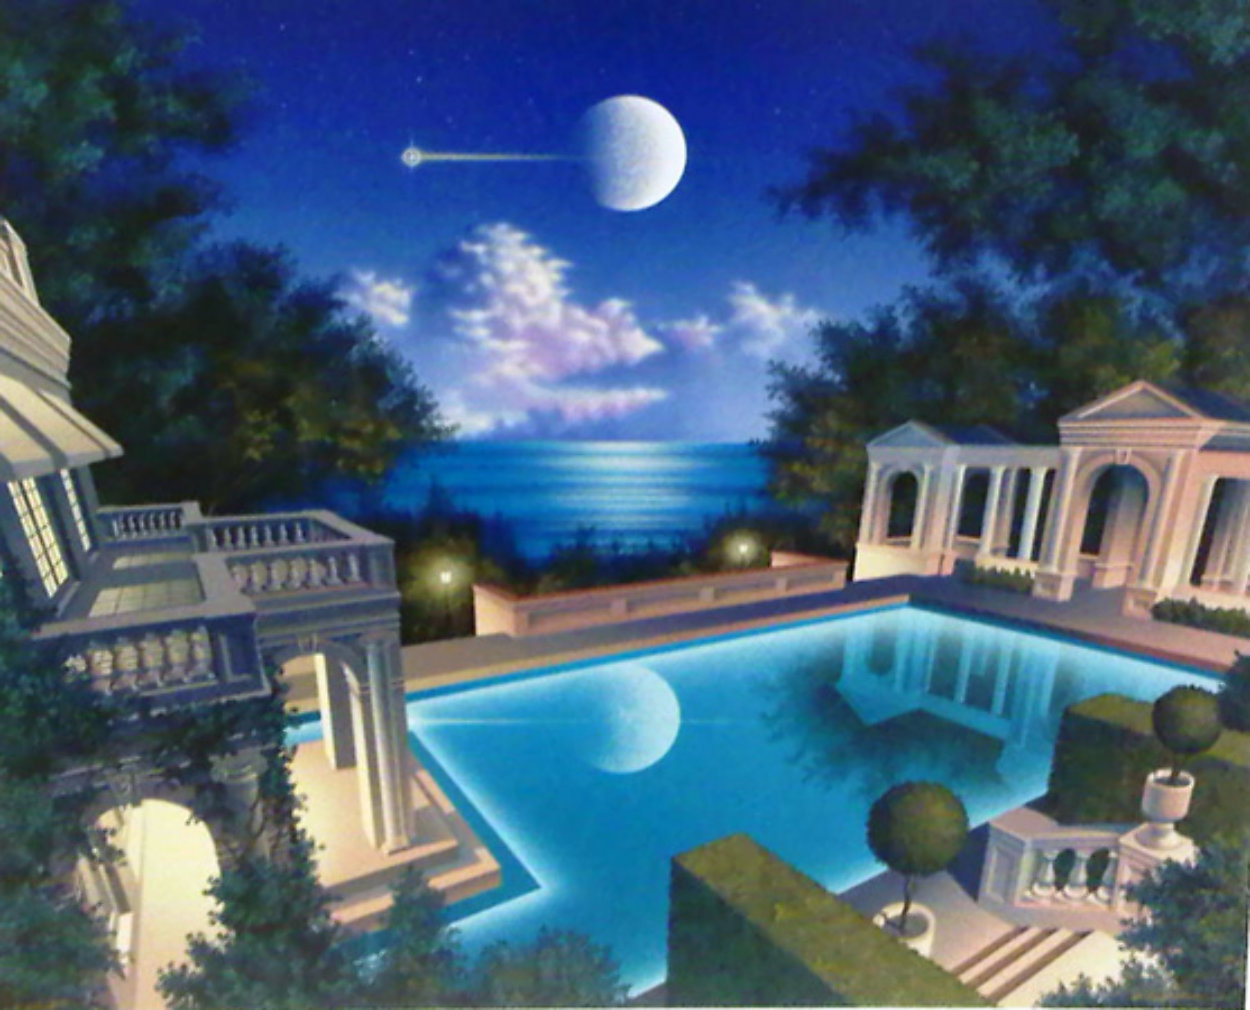 Freccia  D'oro PP 1996 Limited Edition Print by Jim Buckels